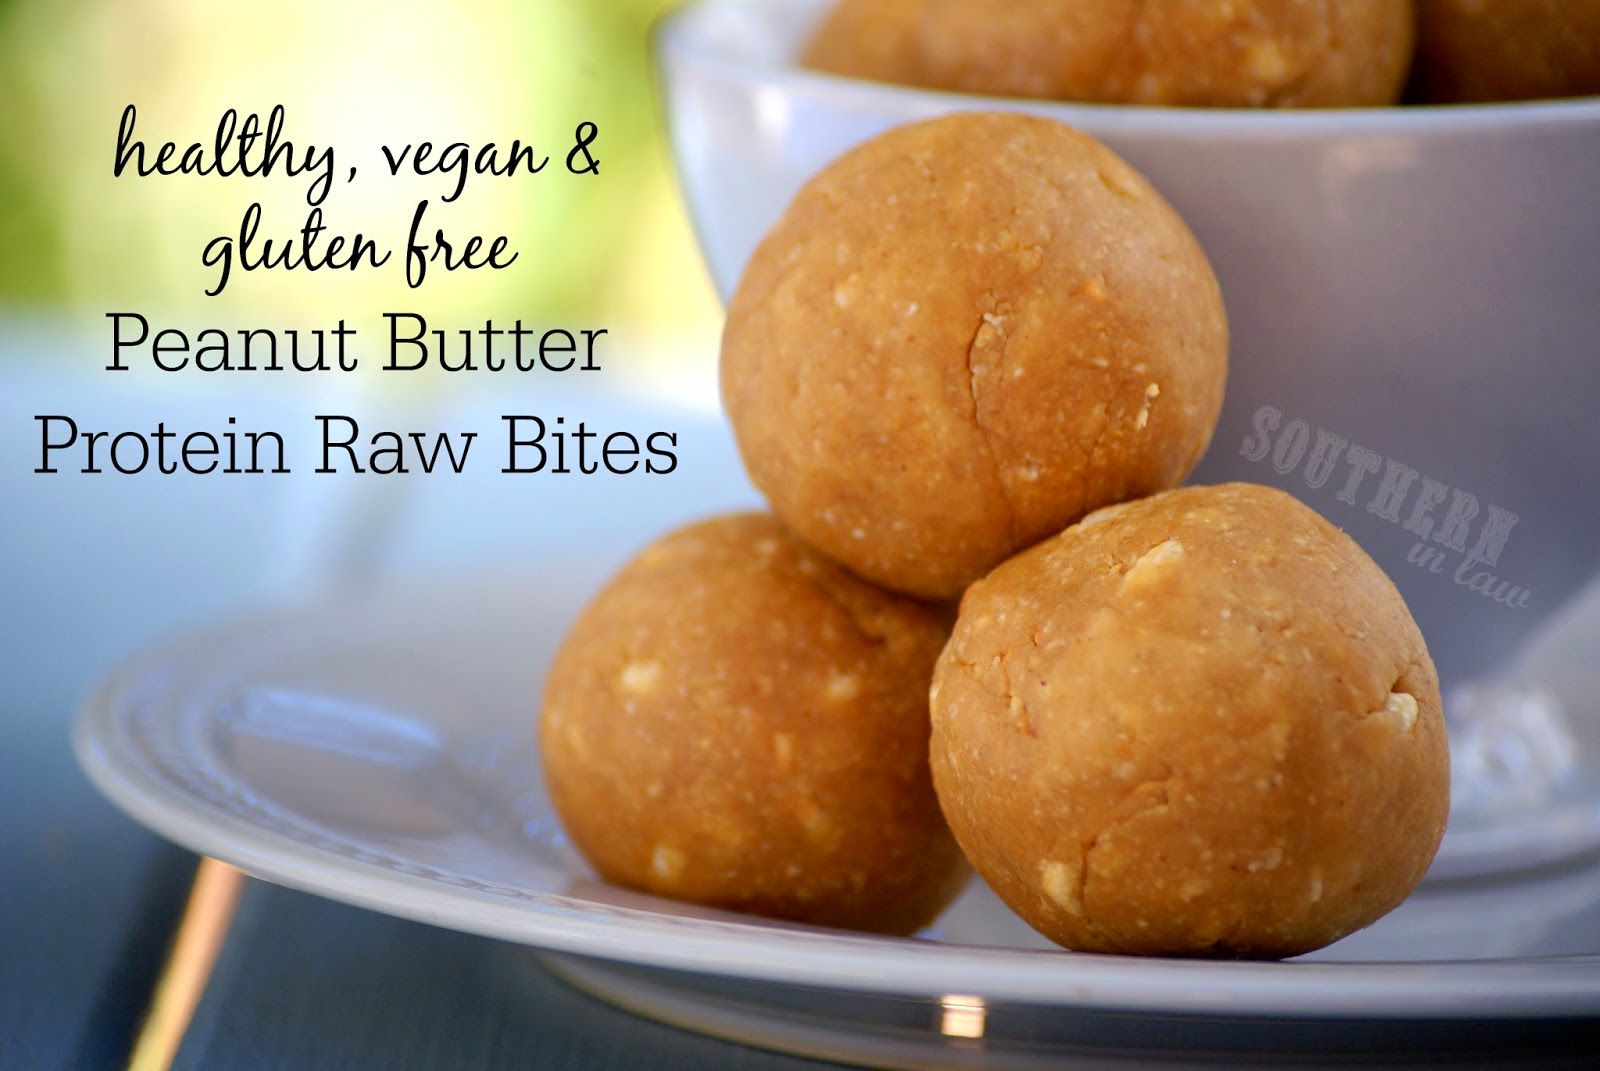 Vegan Peanut Butter Protein Raw Bites - low carb, gluten free, vegan, refined sugar free, no bake, bliss balls, clean eating recipes